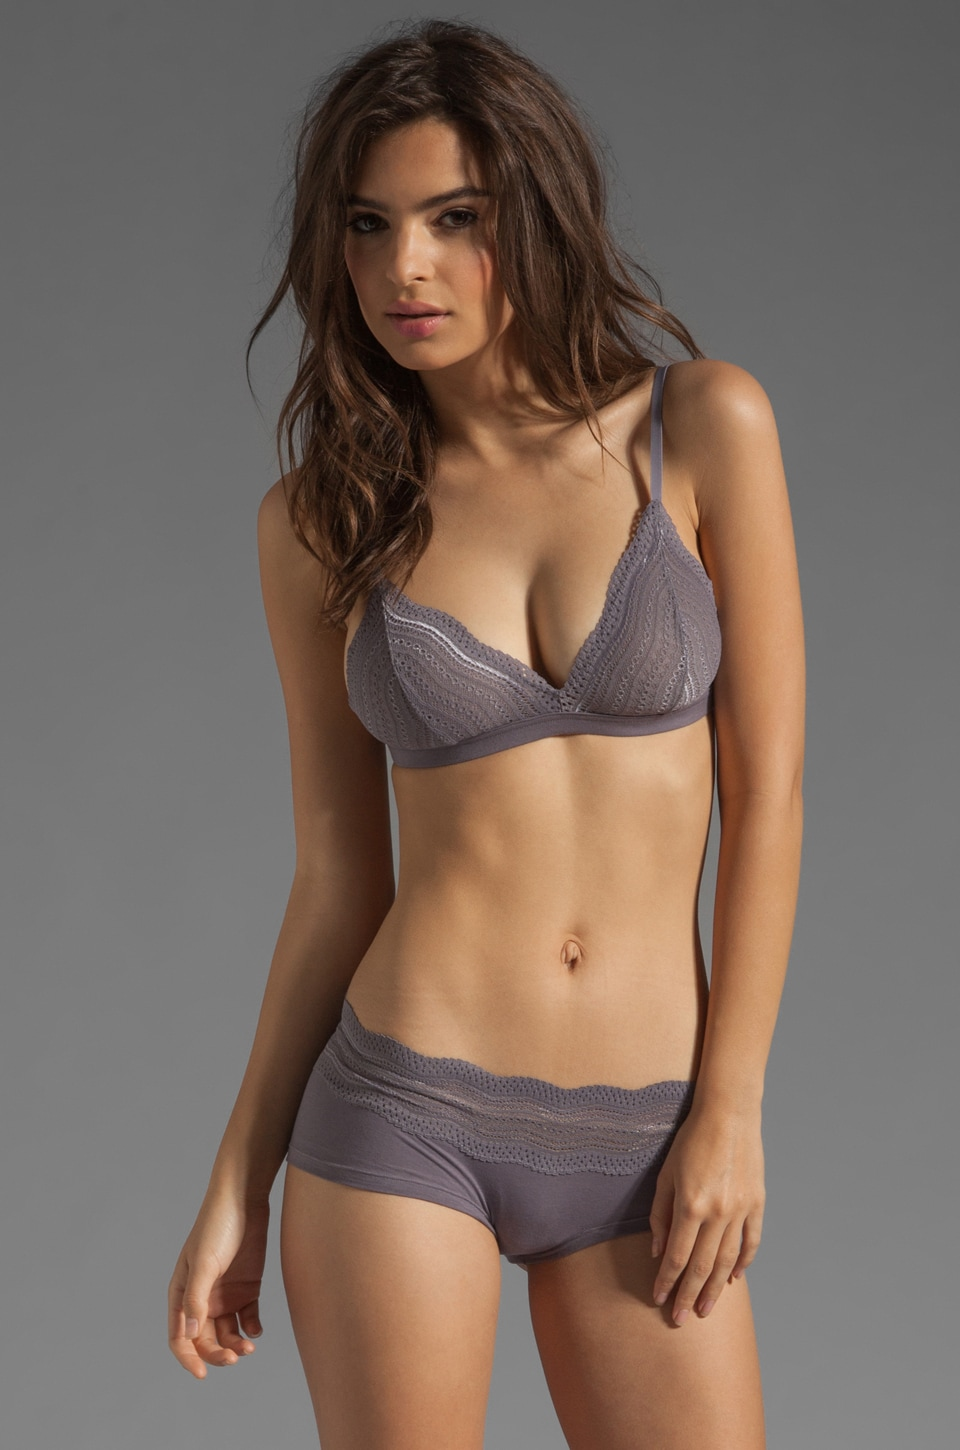 Cosabella Dolce Soft Bra in Rock